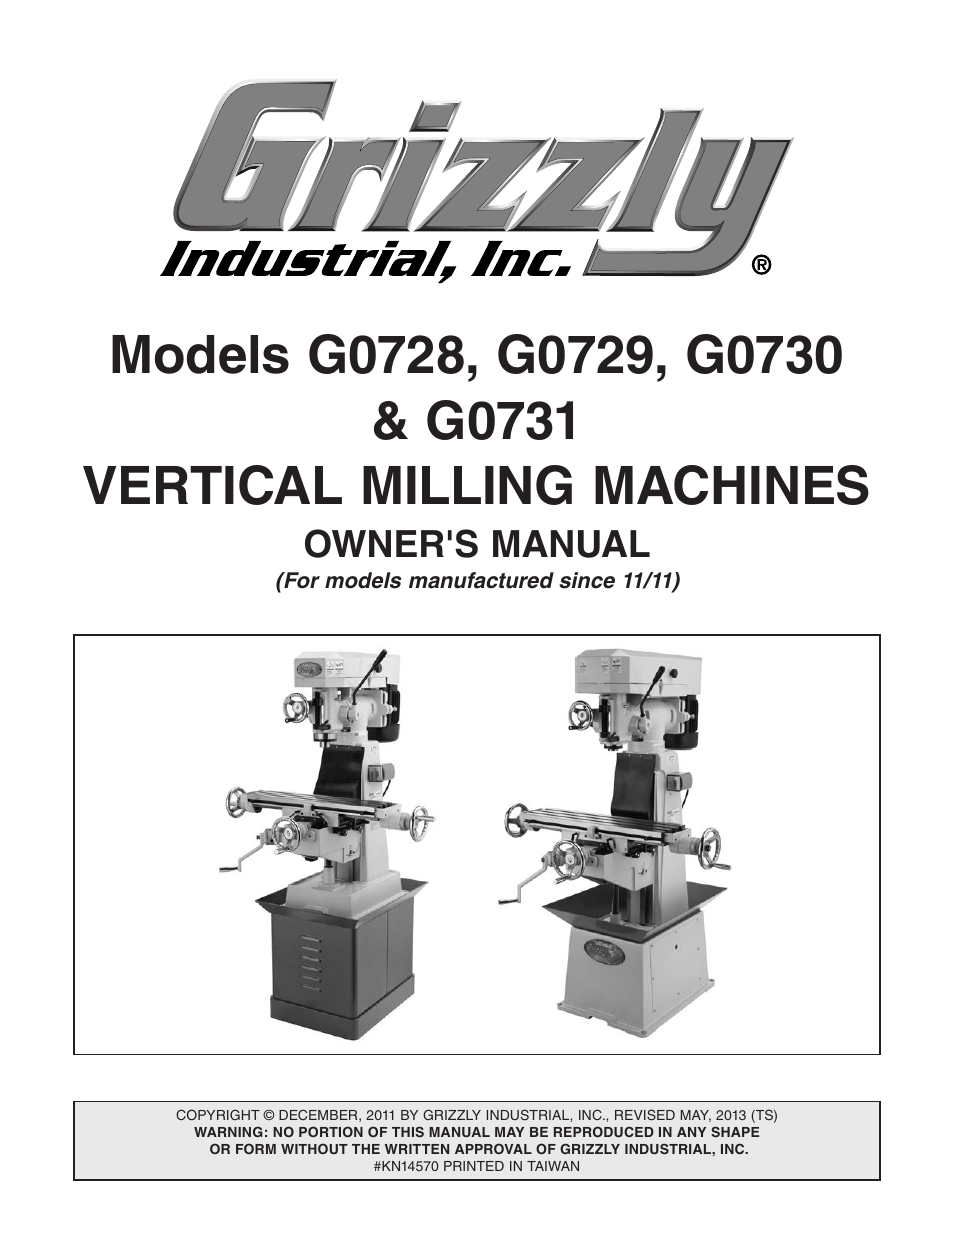 grizzly vertical milling machines g0728 user manual 60 pages rh manualsdir com Select Milling Machine 2 vs Milling Machine Manual